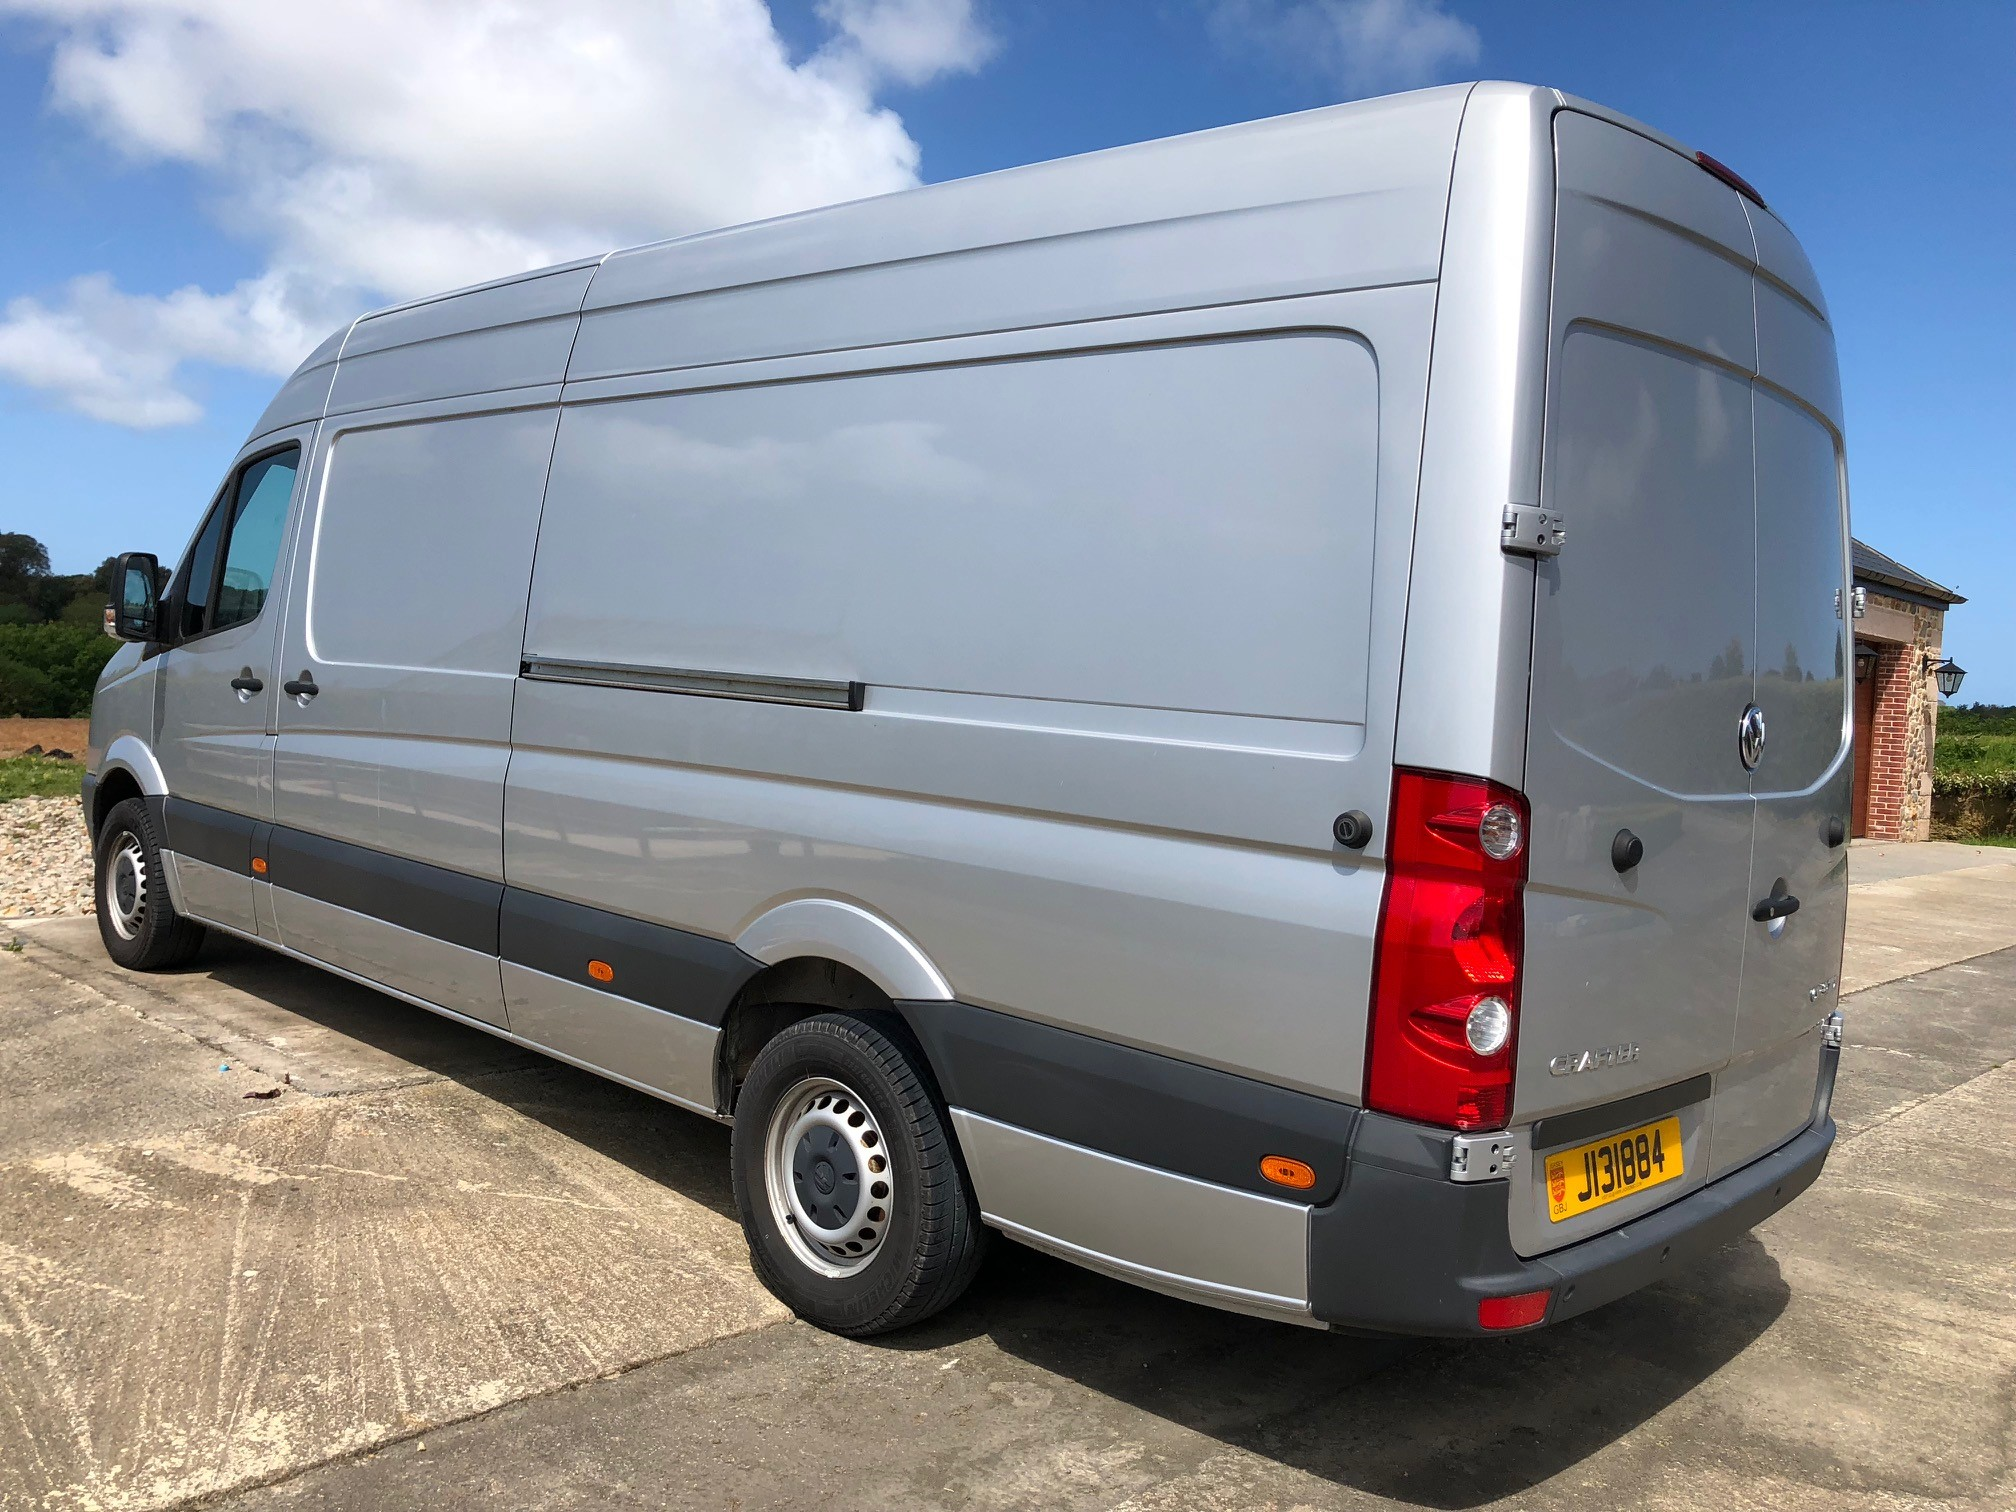 2015 VW Crafter CR35 LWB - Only 3600 miles Image 3